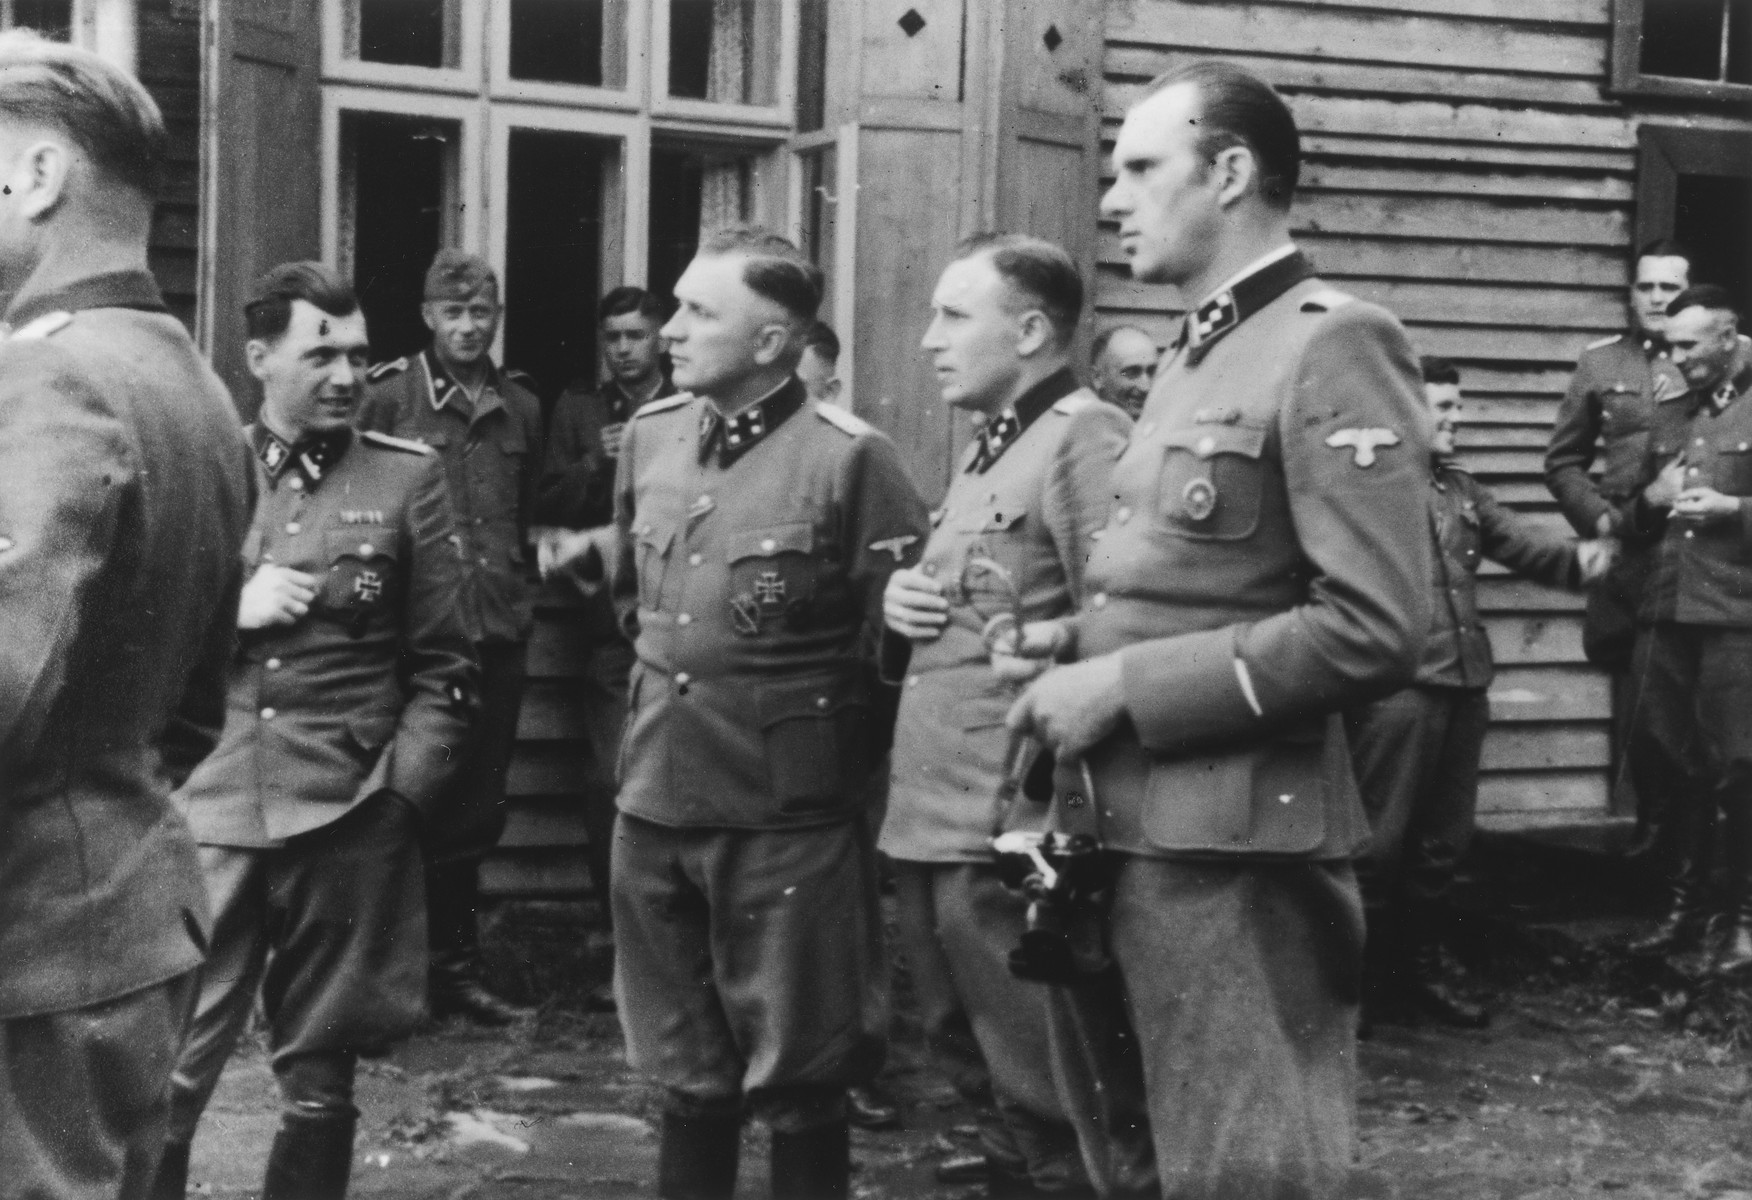 SS officers socialize at the SS retreat of Solahuette outside of Auschwitz.  From left to right they are: Josef Mengele, Richard Baer (Commandant of Auschwitz), Karl Hoecker (his adjutant) and Walter Schmidetzki (head of Kanada and later Aministrative Director of Monowitz). Konrad Wiegand, head of the Fahrbereitschaft (car and truck pool) is at the back right.  Pictured in the background between Hoecker and Schmidetzki is Herman Balthasar Philip Buch, who would become the kommandofuehrer of the sonderkommando around September 1, 1944, taking over from Otto Moll.  [Based on the officers visiting Solahutte, we surmise that the photographs were taken to honor Rudolf Hoess who completed his tenure as garrison senior on July 29.]